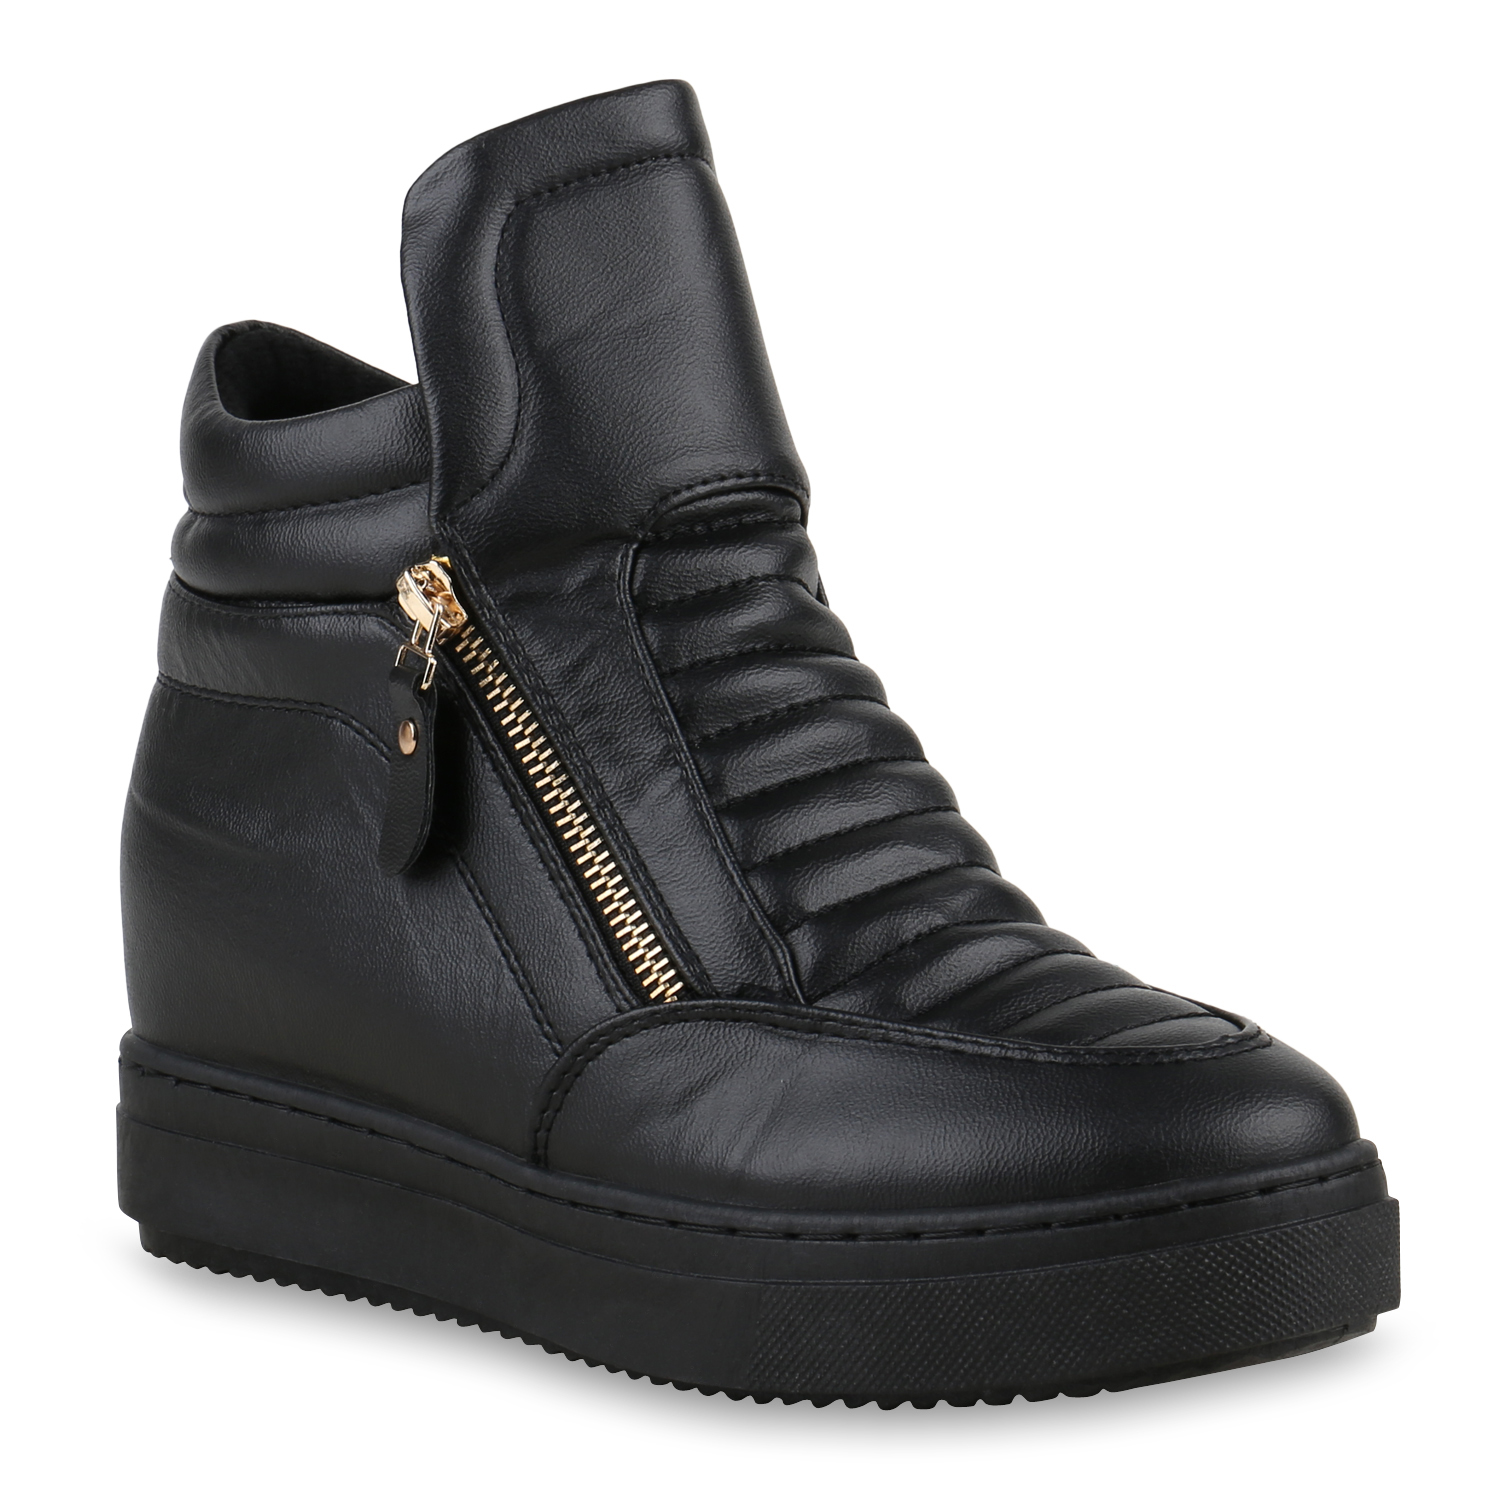 damen sneaker wedges plateau turnschuhe zipper freizeit 812744 ebay. Black Bedroom Furniture Sets. Home Design Ideas